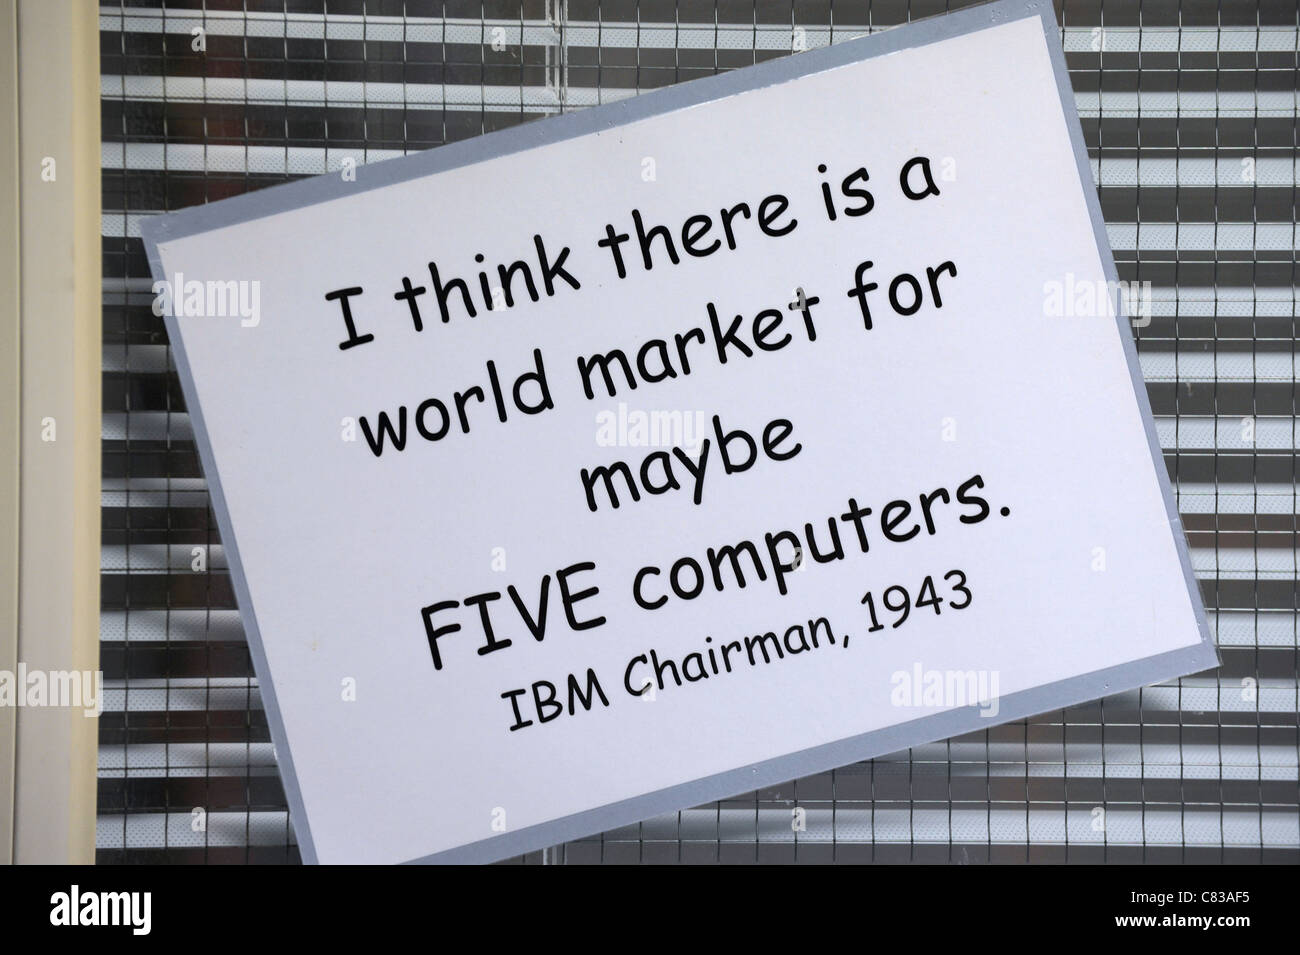 IBM Chairman quote 1943 'I think there is a world market for maybe FIVE computers - Stock Image